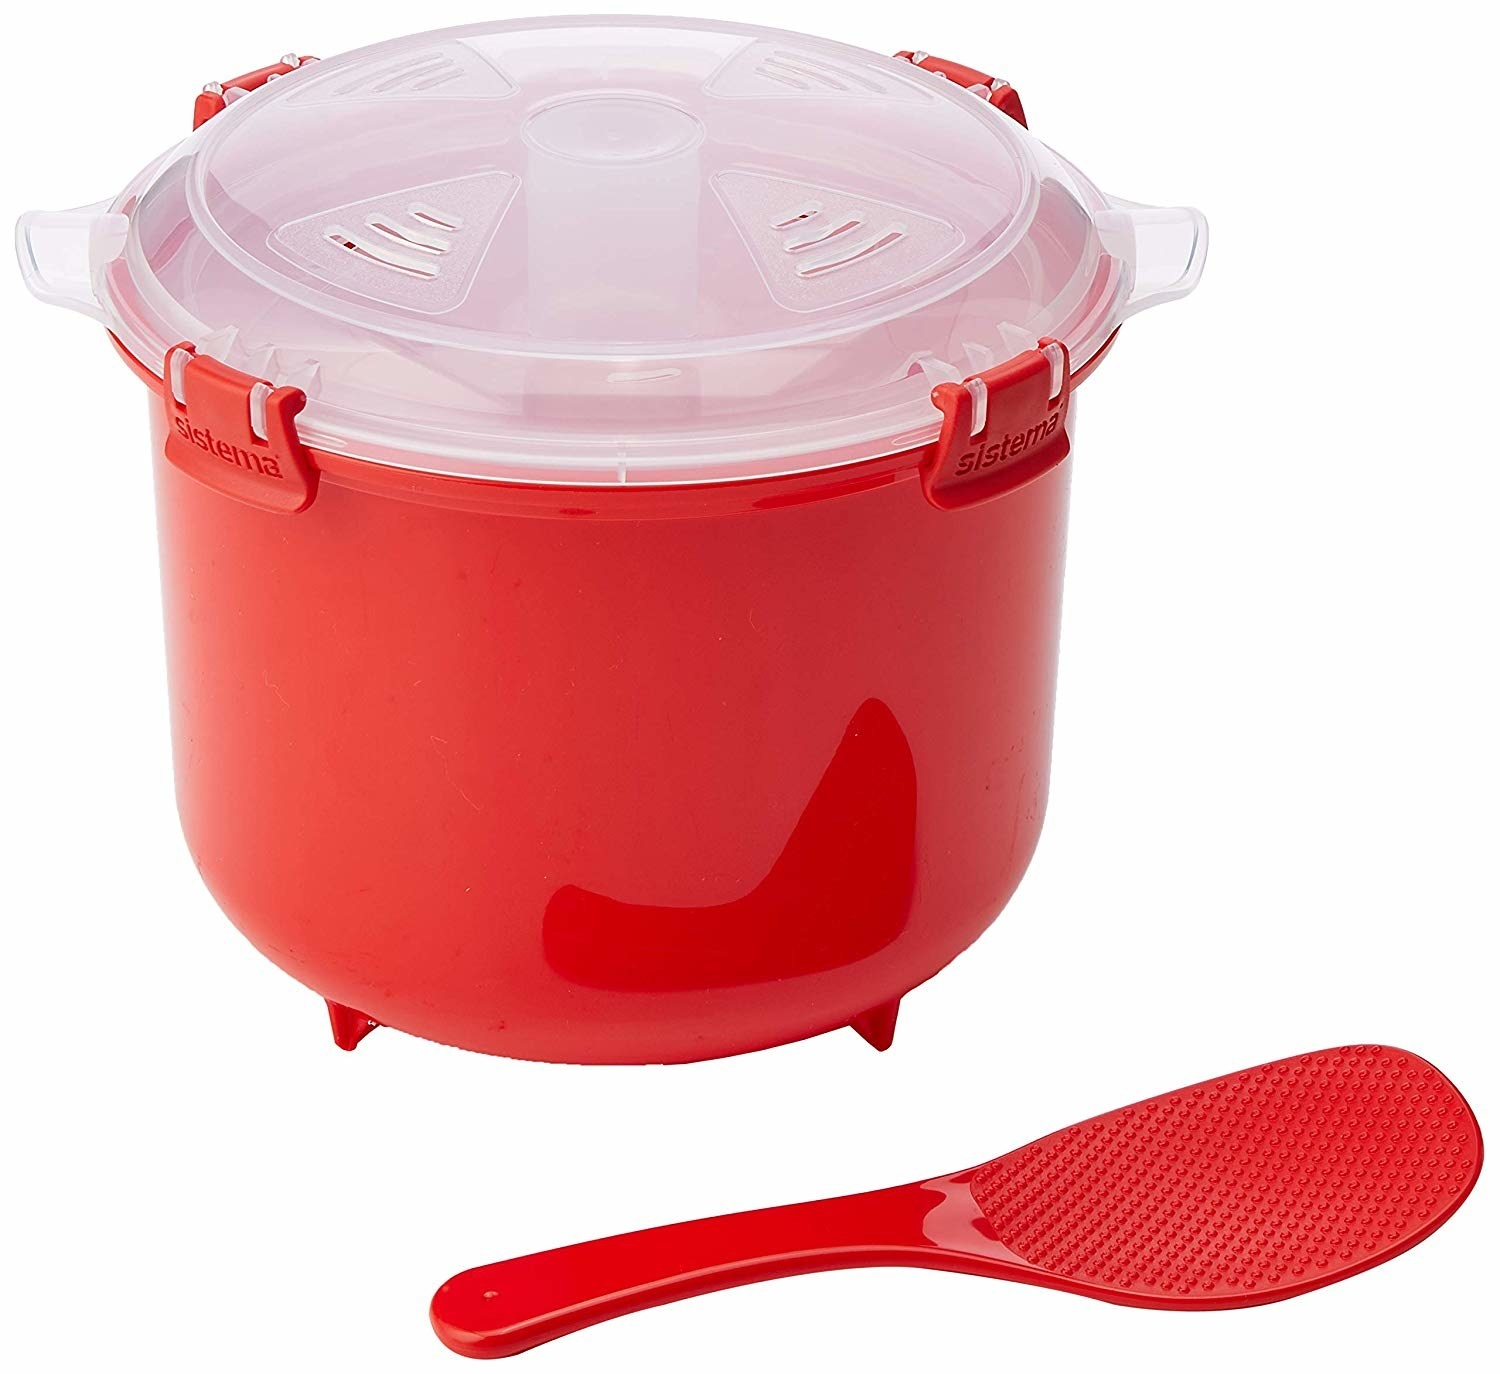 The red rice cooker with paddle